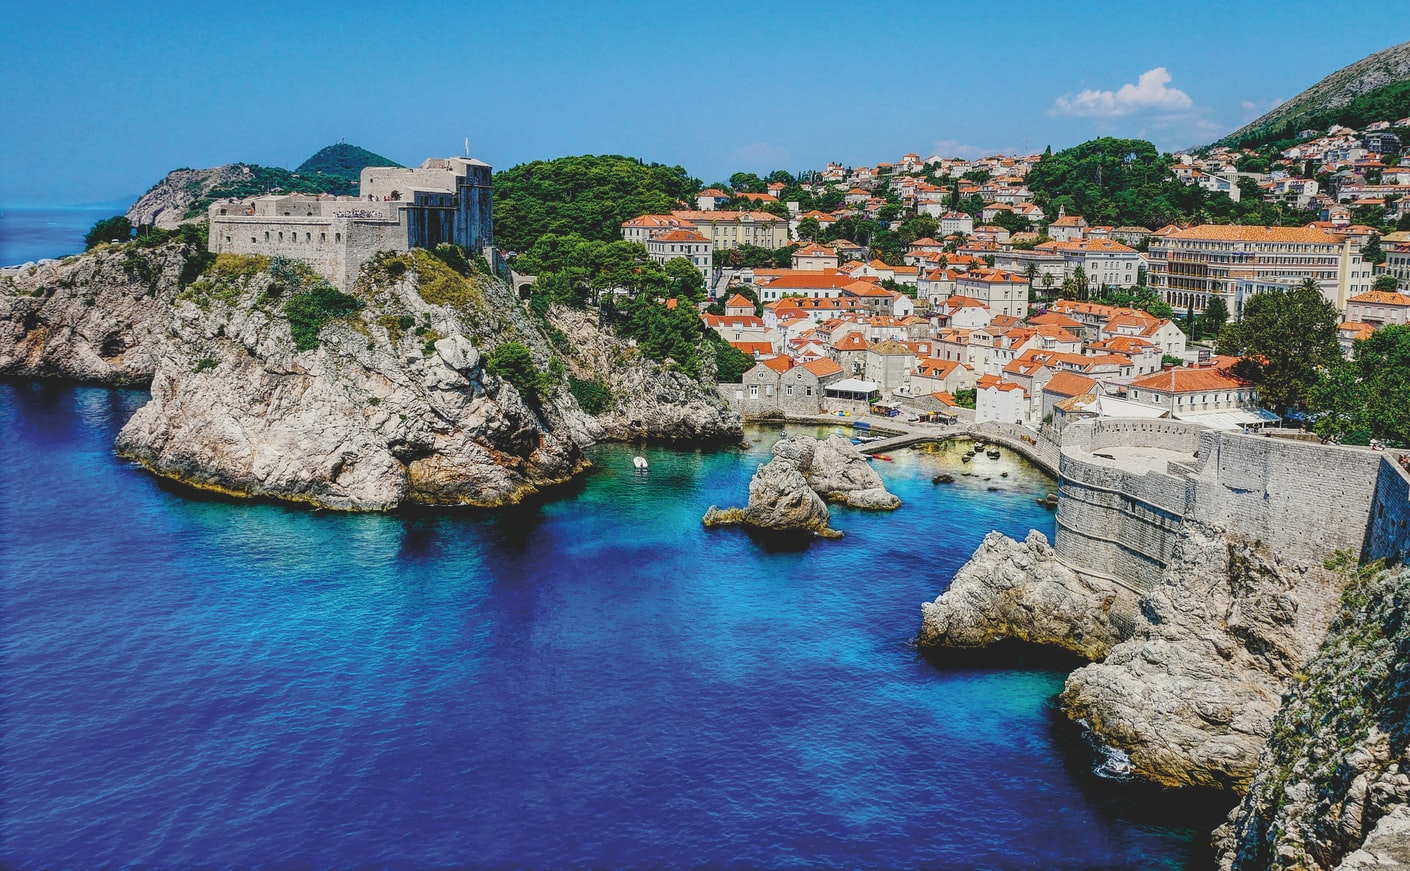 in April for a holiday to Croatia